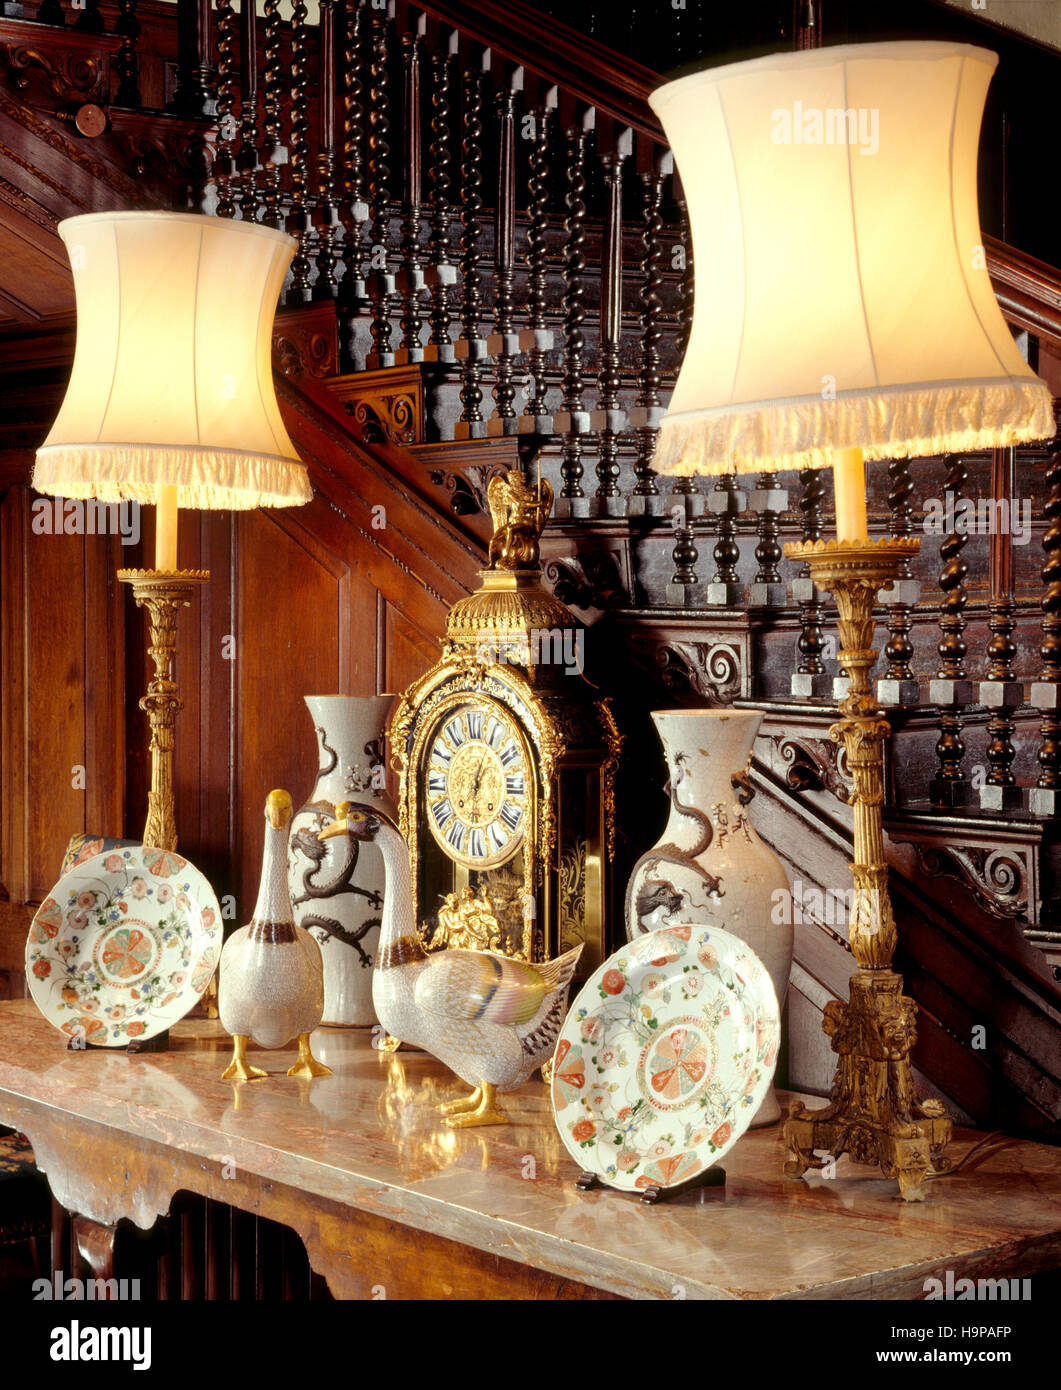 Partial view of the Inner Hall at Antony House showing the marble top table, ceramic geese, clock, table lamps, - Stock Image